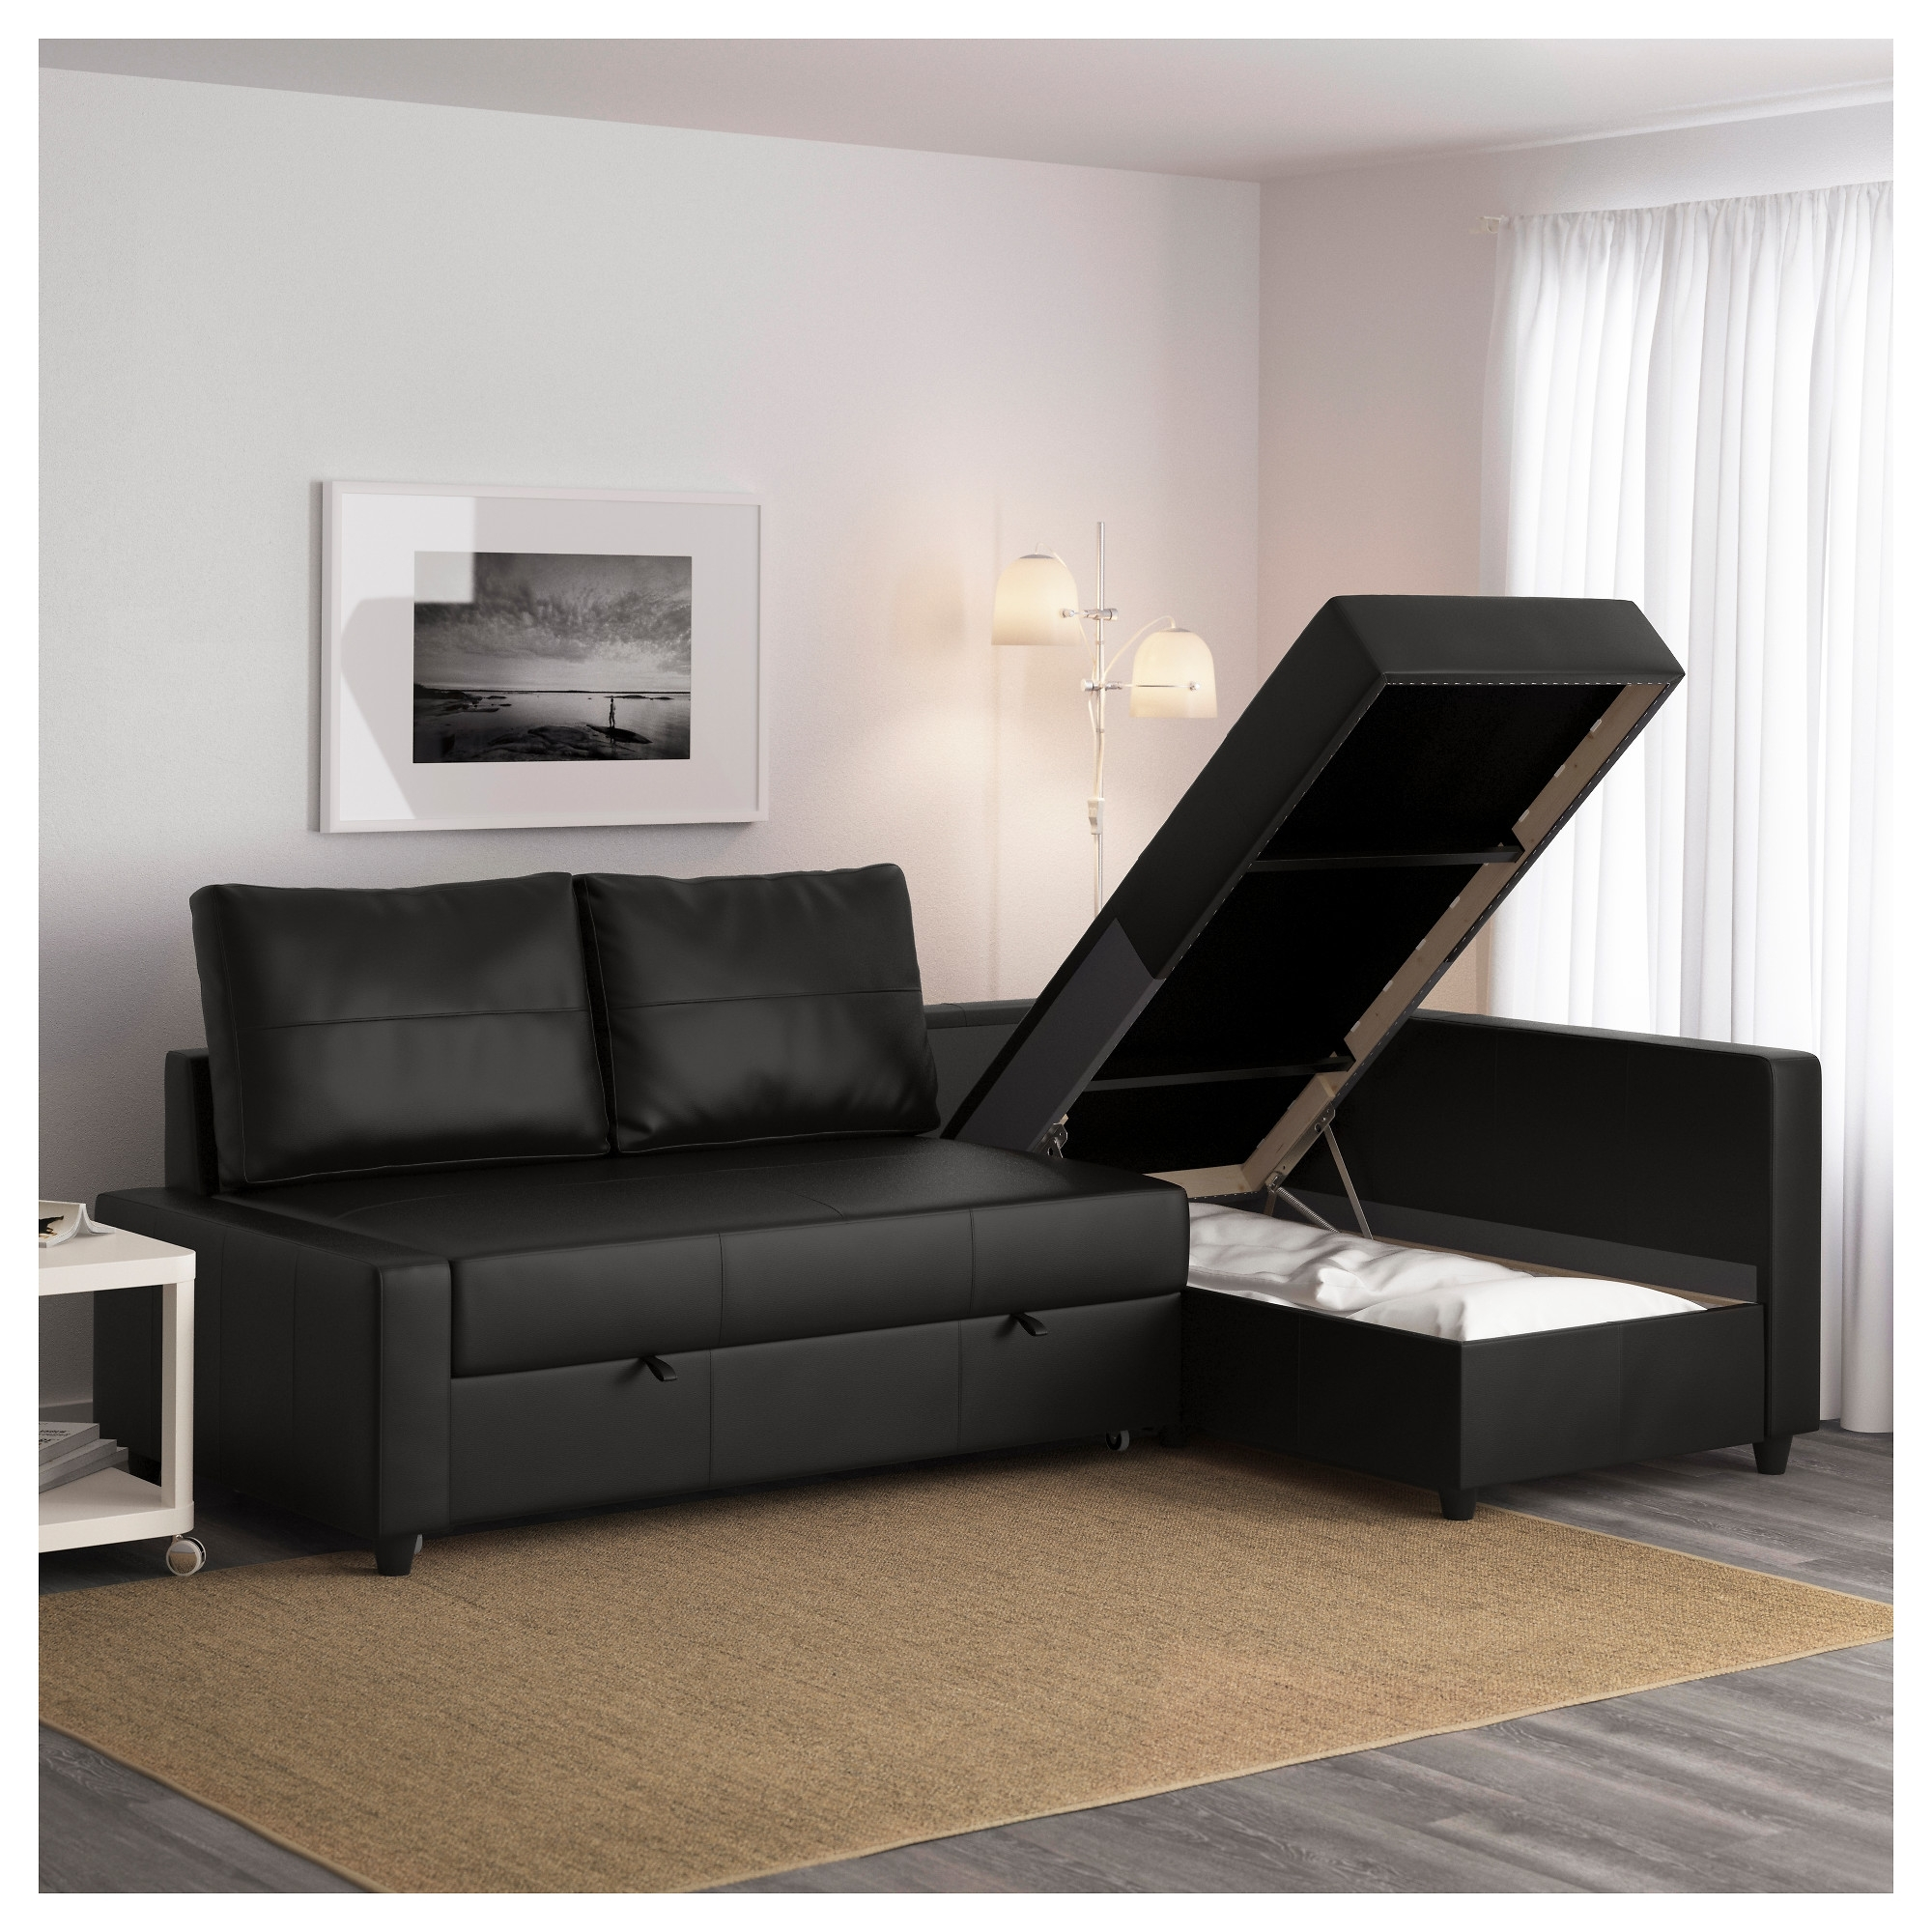 Most Current Friheten Sleeper Sectional,3 Seat W/storage – Skiftebo Dark Gray In Gray Couches With Chaise (View 12 of 15)